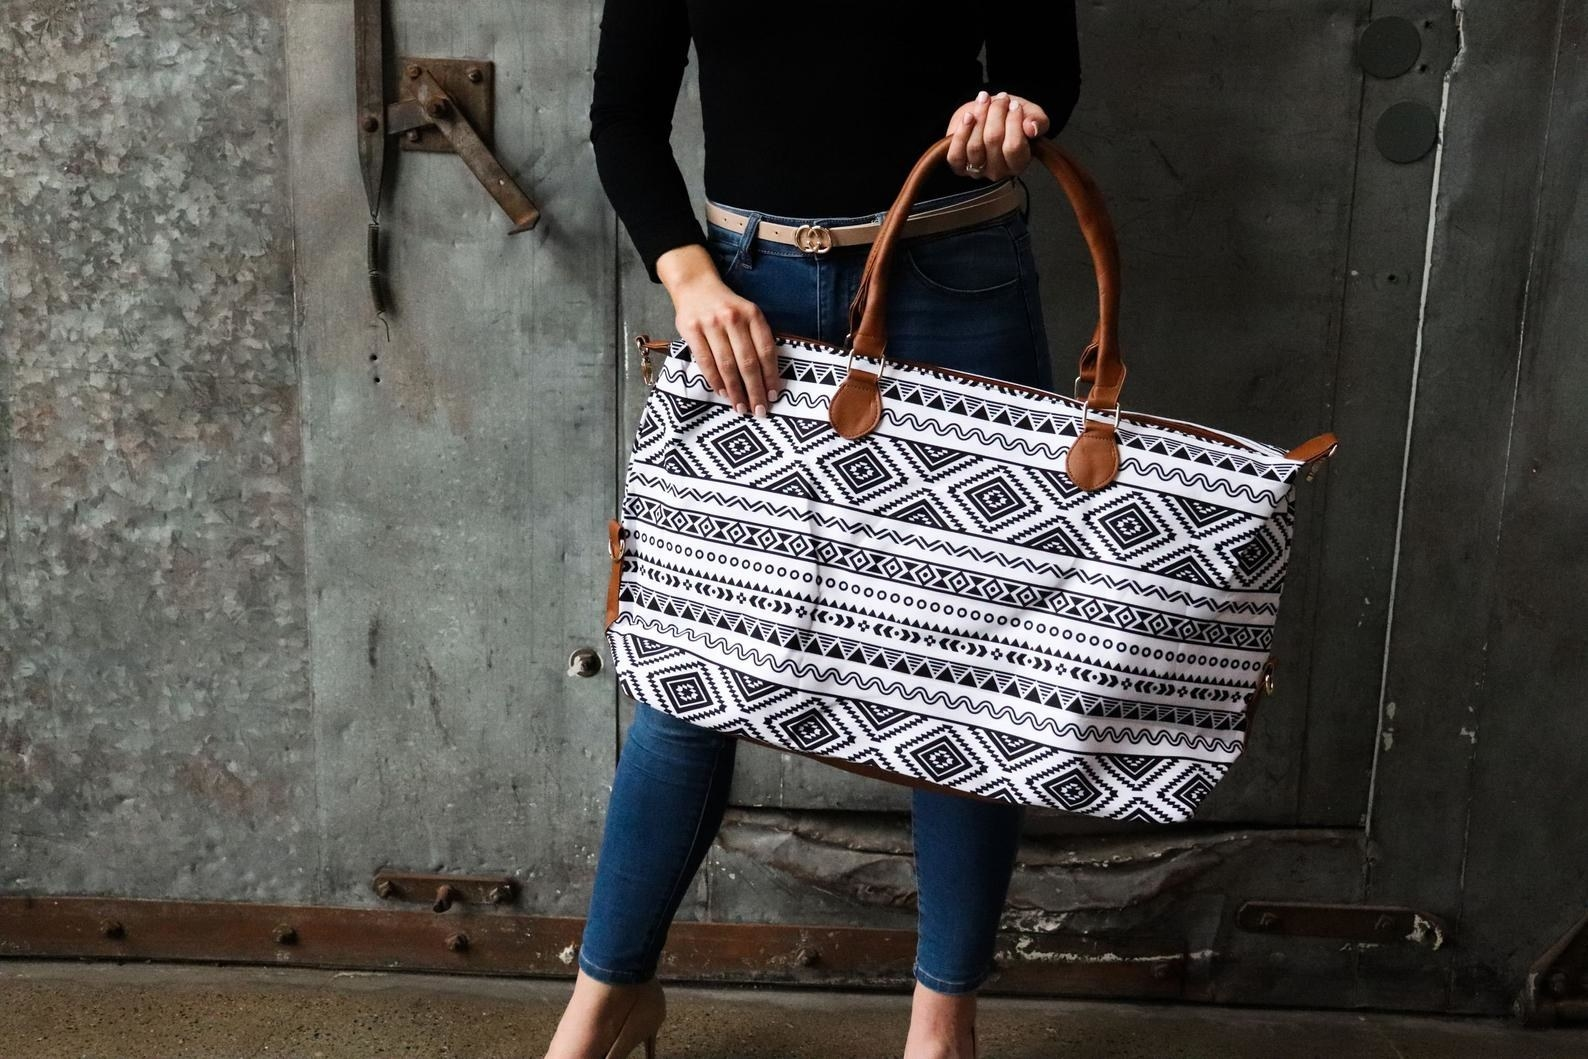 Model is holding a white and black geometric patterned tote with brown leather straps